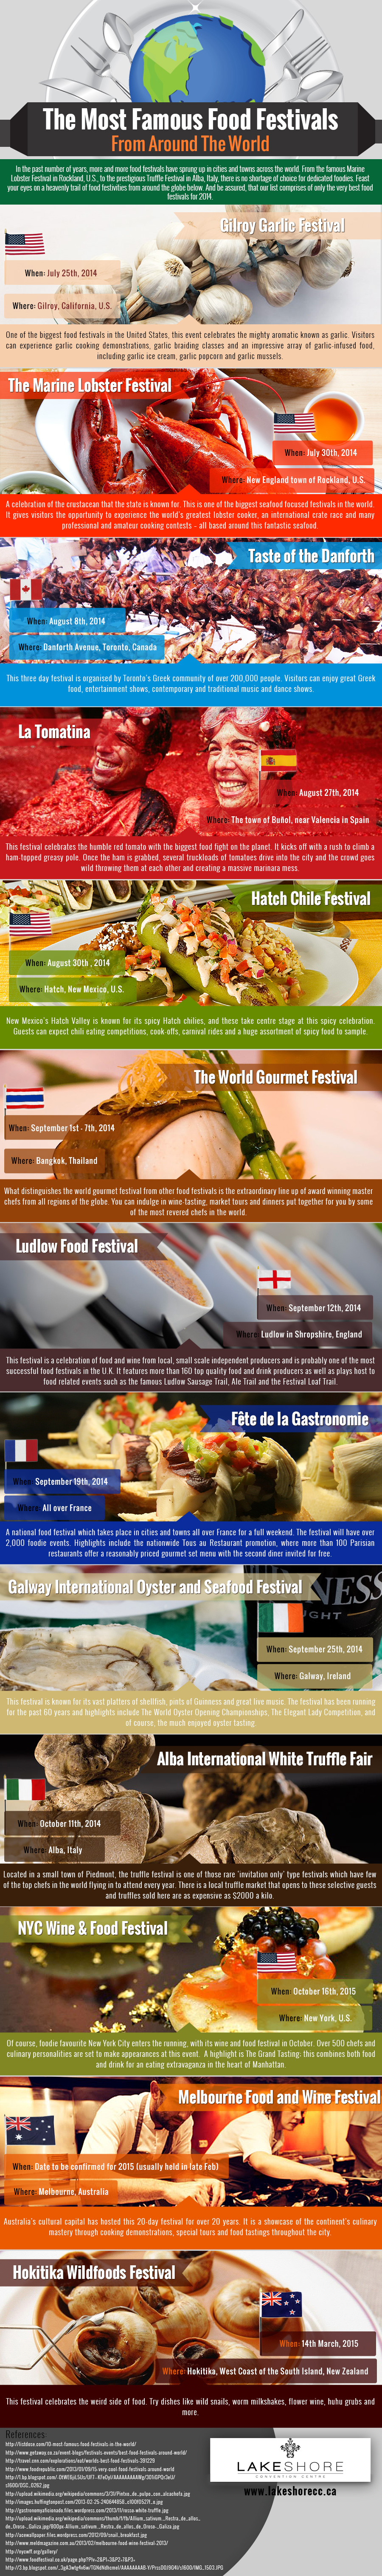 The Most Famous Food Festivals From Around the World